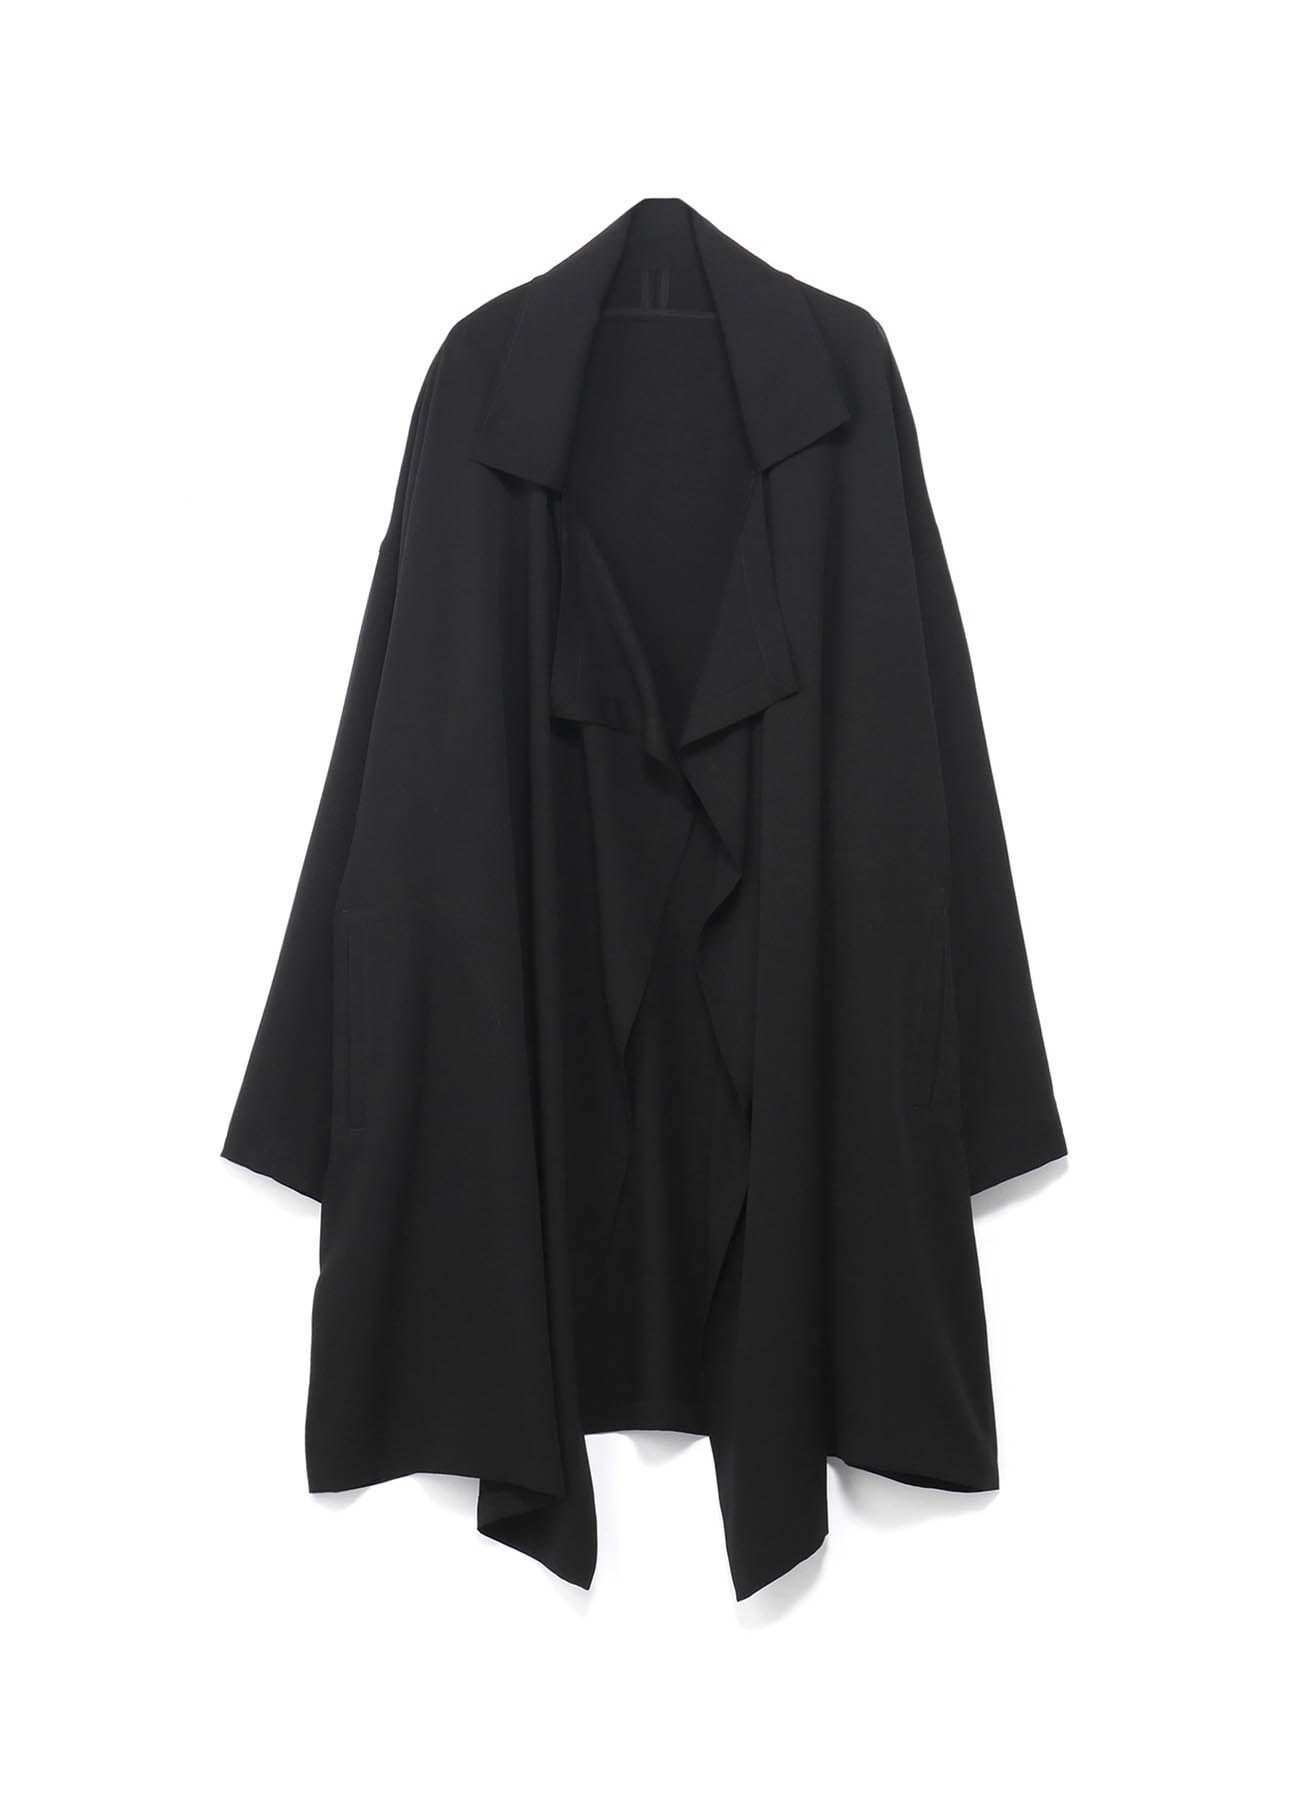 Tencel /Burberry Frame Double Collar Drape Coat